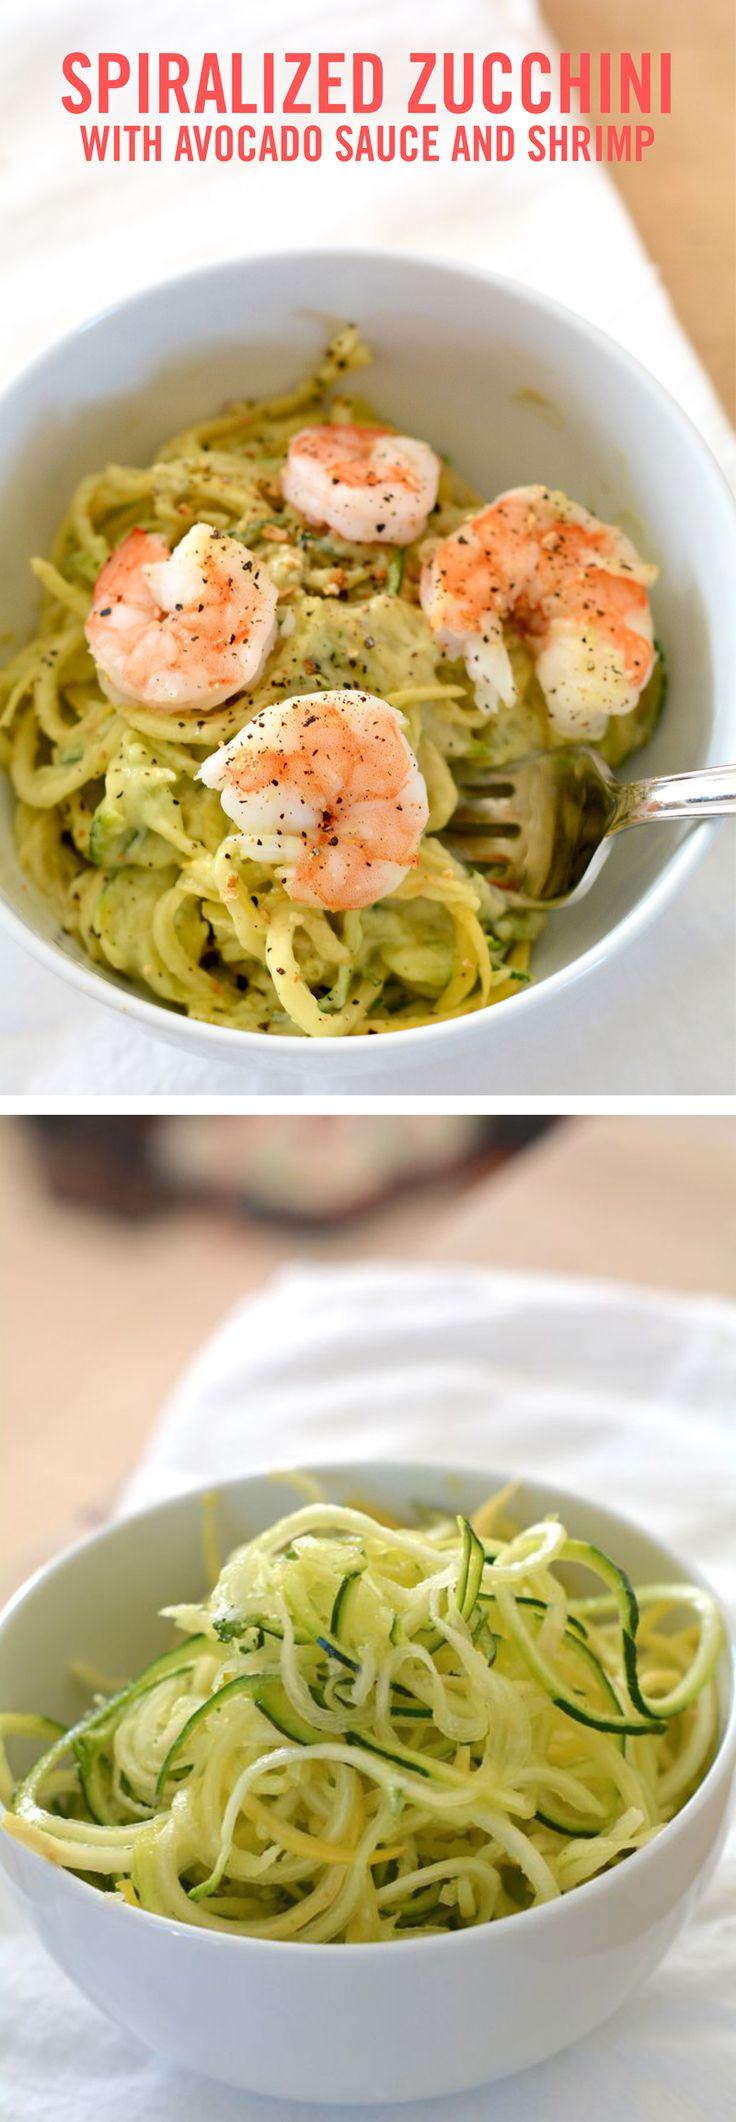 Spiralized zucchini noodles, or zoodles with avocado sauce and steamed shrimp. The sauce is made with yogurt and avocados, and the shrimp is lightly cooked and placed on top to add extra protein. A healthy AND delicious recipe from @babble !